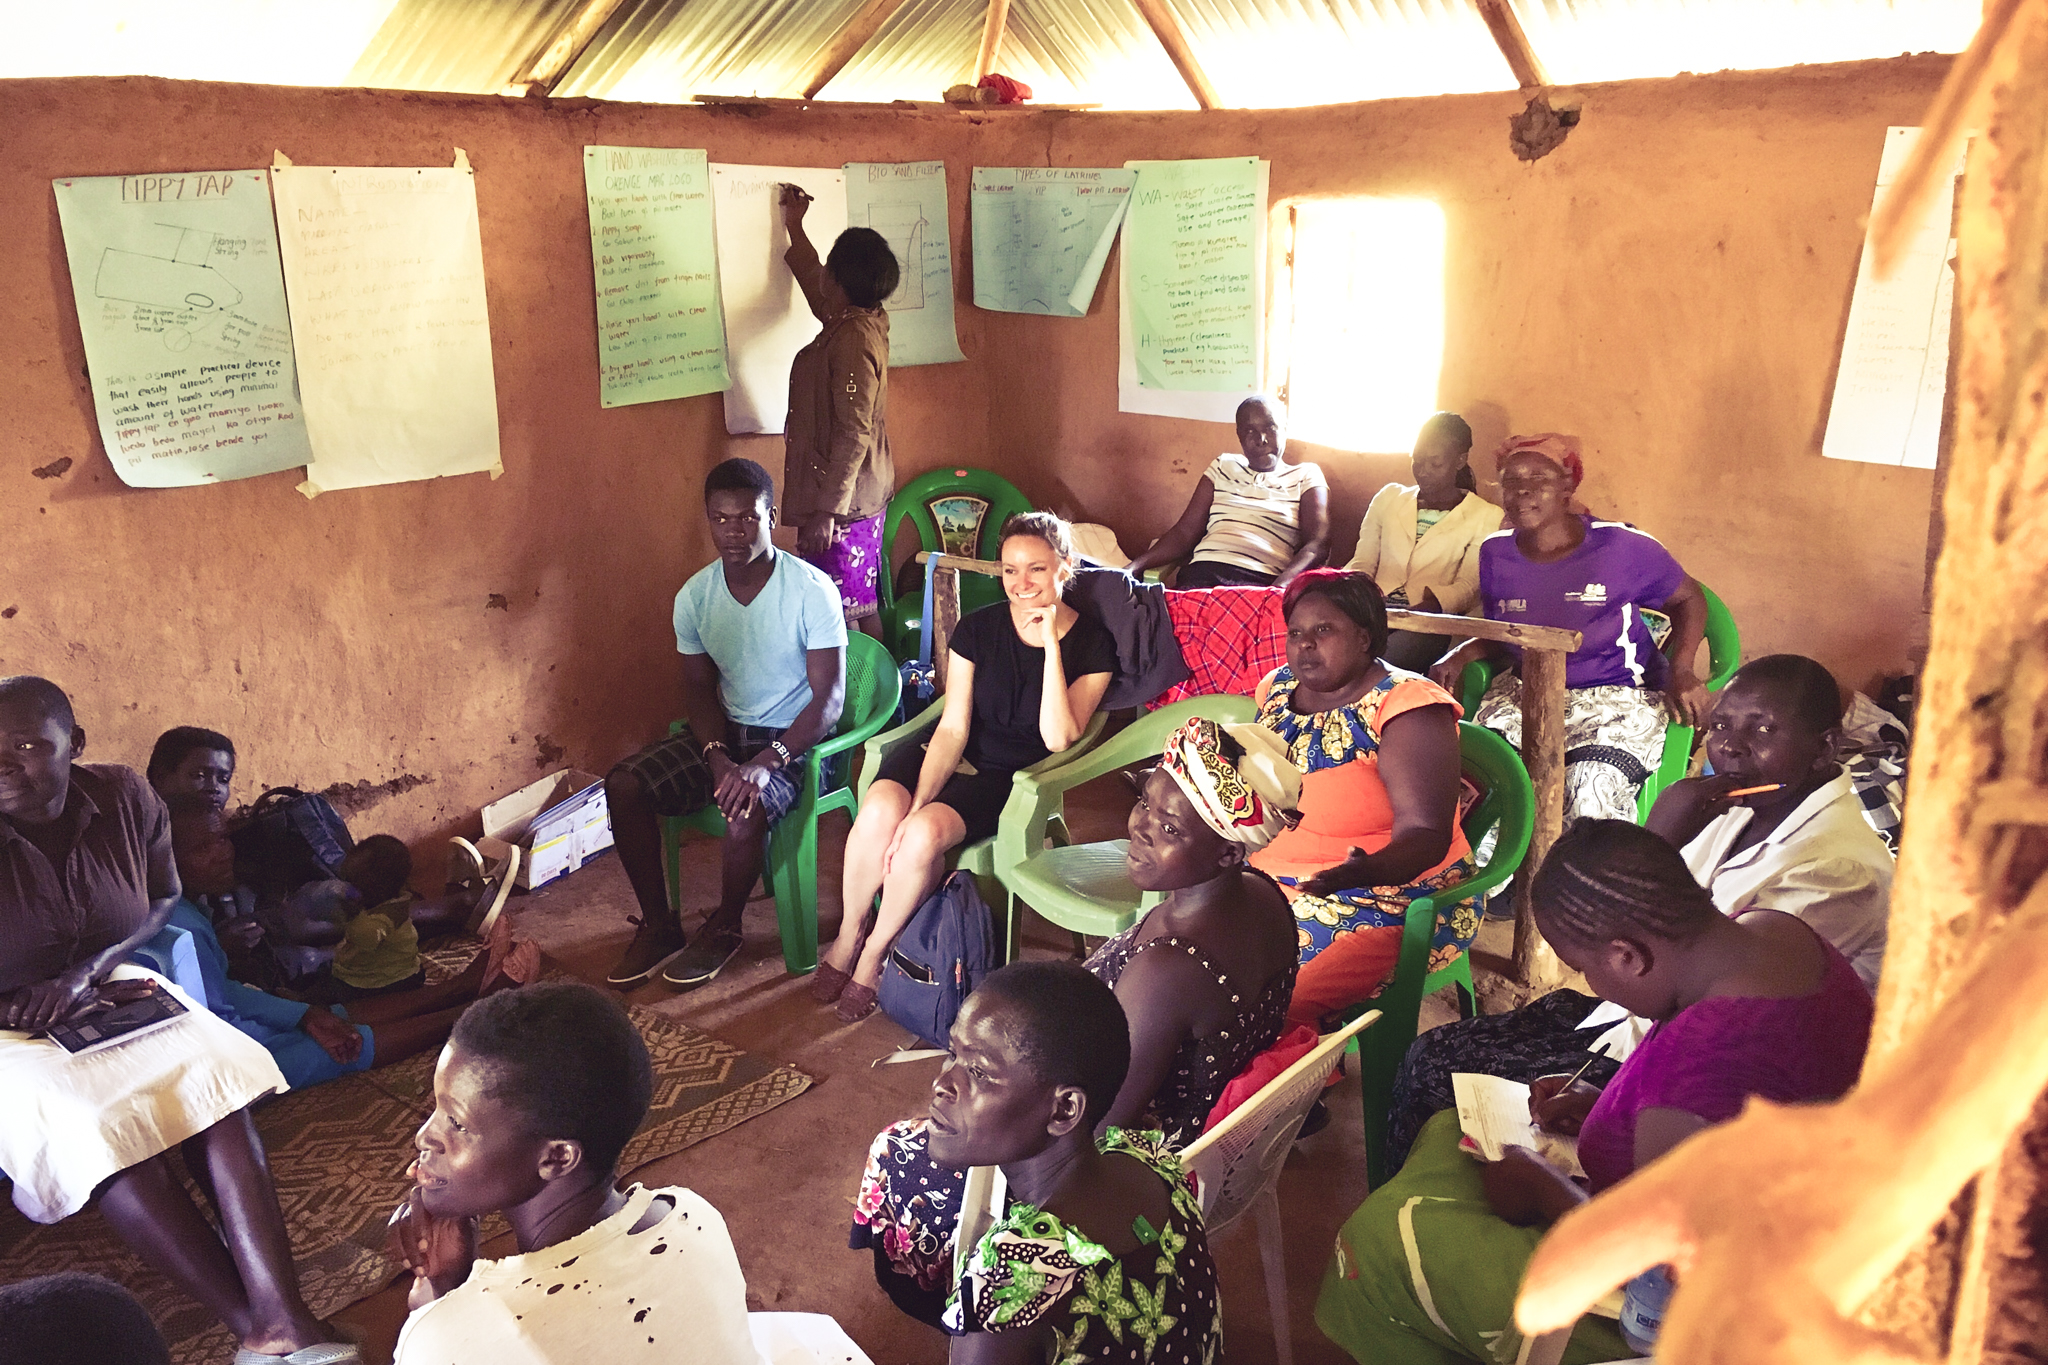 As part of client discovery and onsite immersion: attending a WASH training for community health workers in rural western Kenya with Lwala Community Alliance.